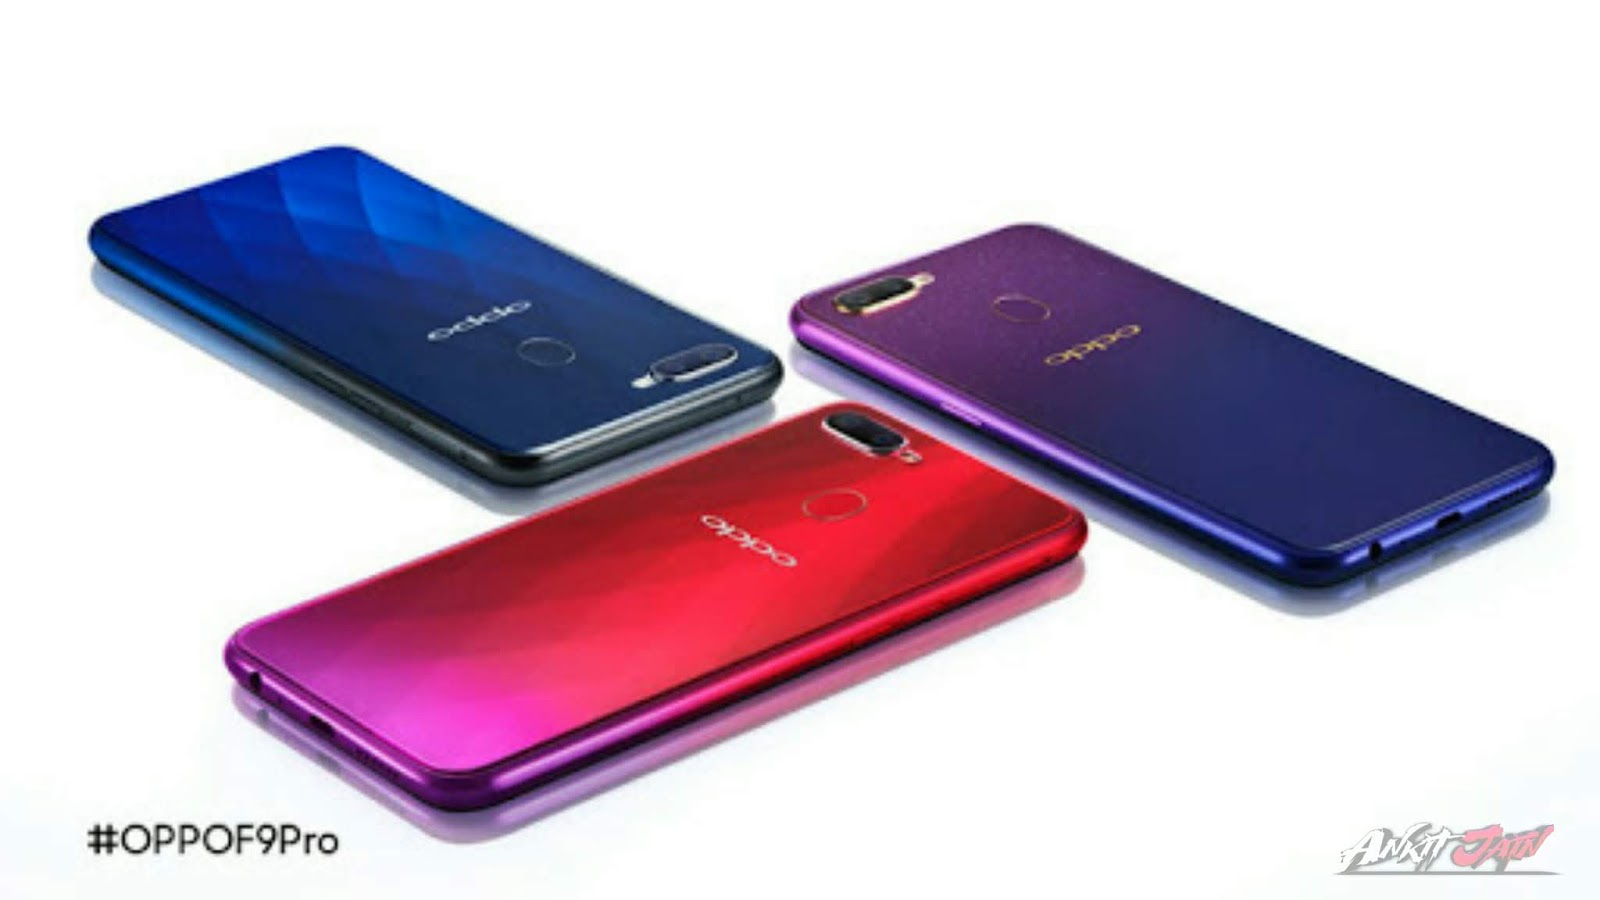 Oppo F9 Pro, Oppo F9 Pro Highlights, Oppo F9 Pro Launched in India